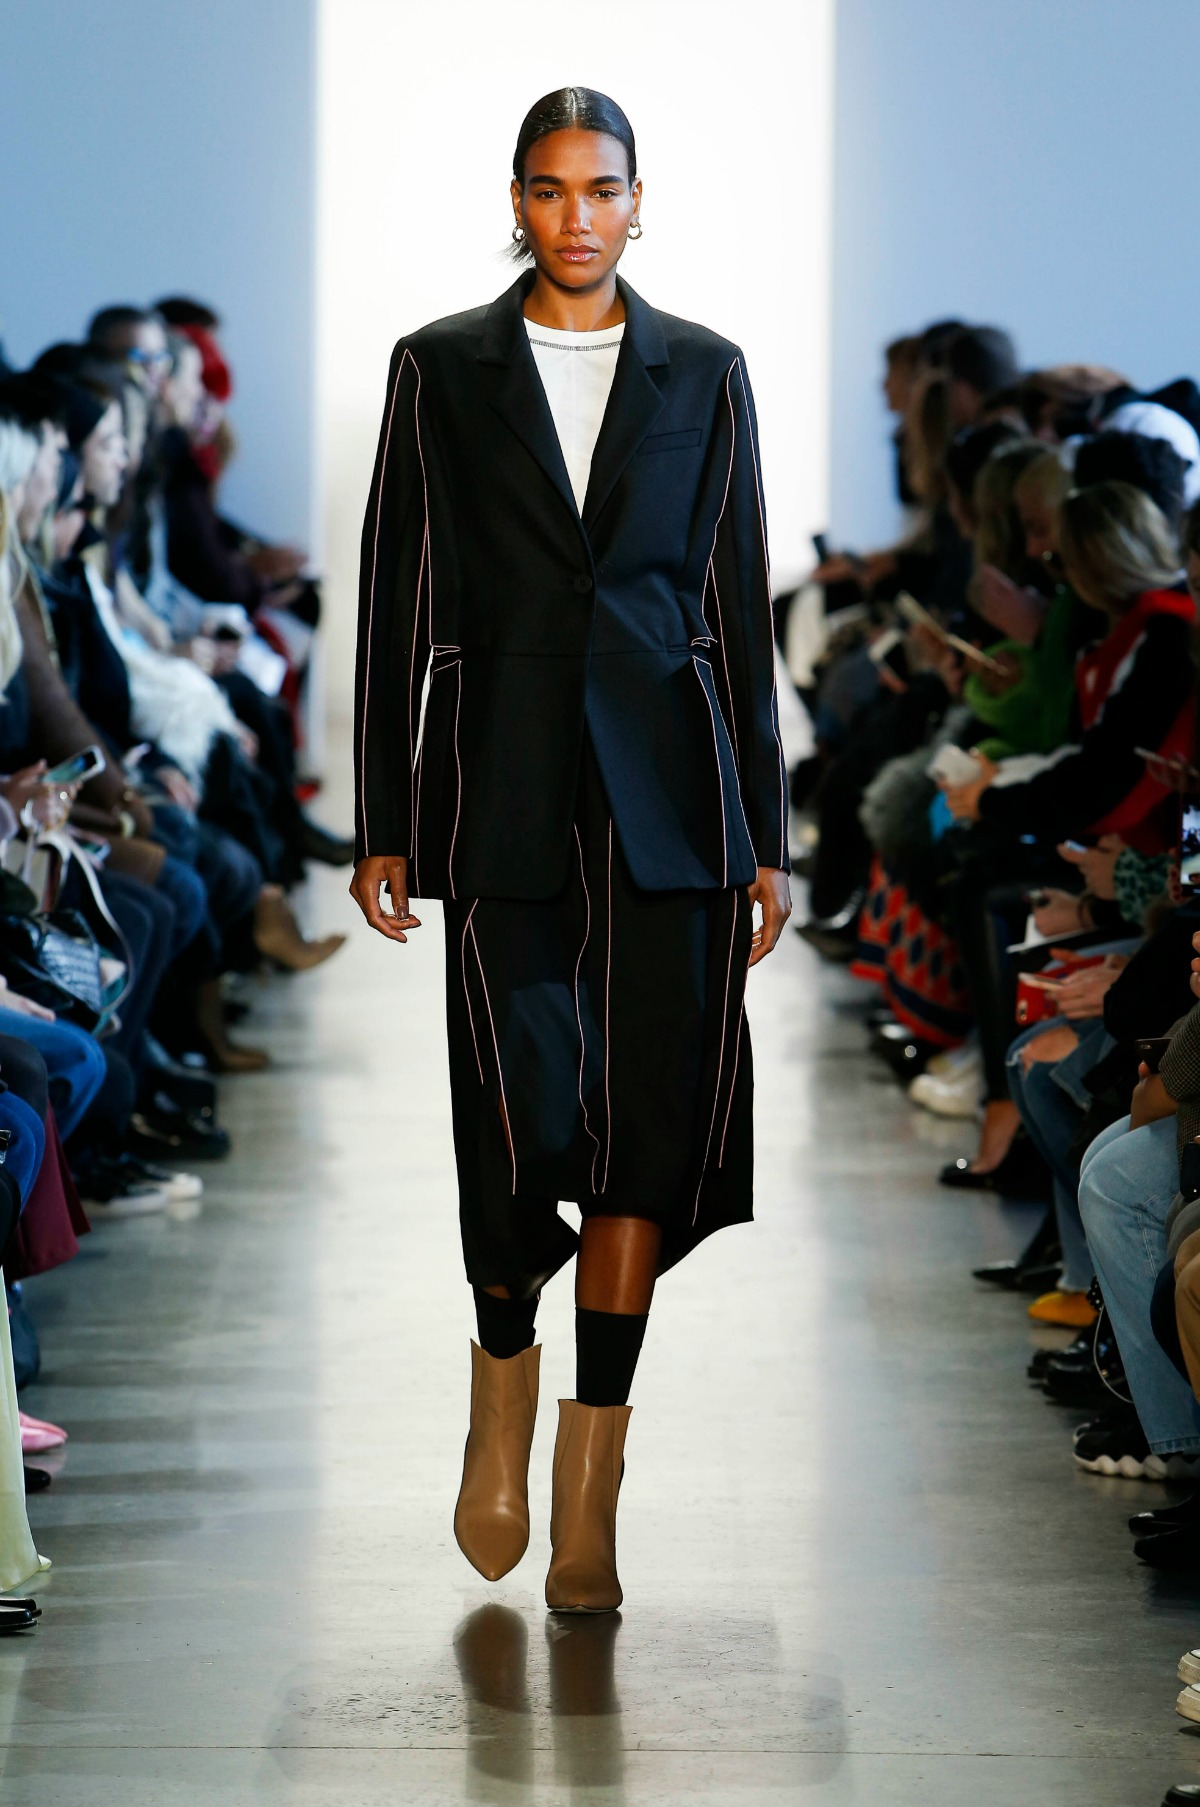 COLOVOS Fall 2018 Runway at NYFW I Millennial Black Wool Seamed Jacket and Skirt Suit #NYFW #WinterFashion